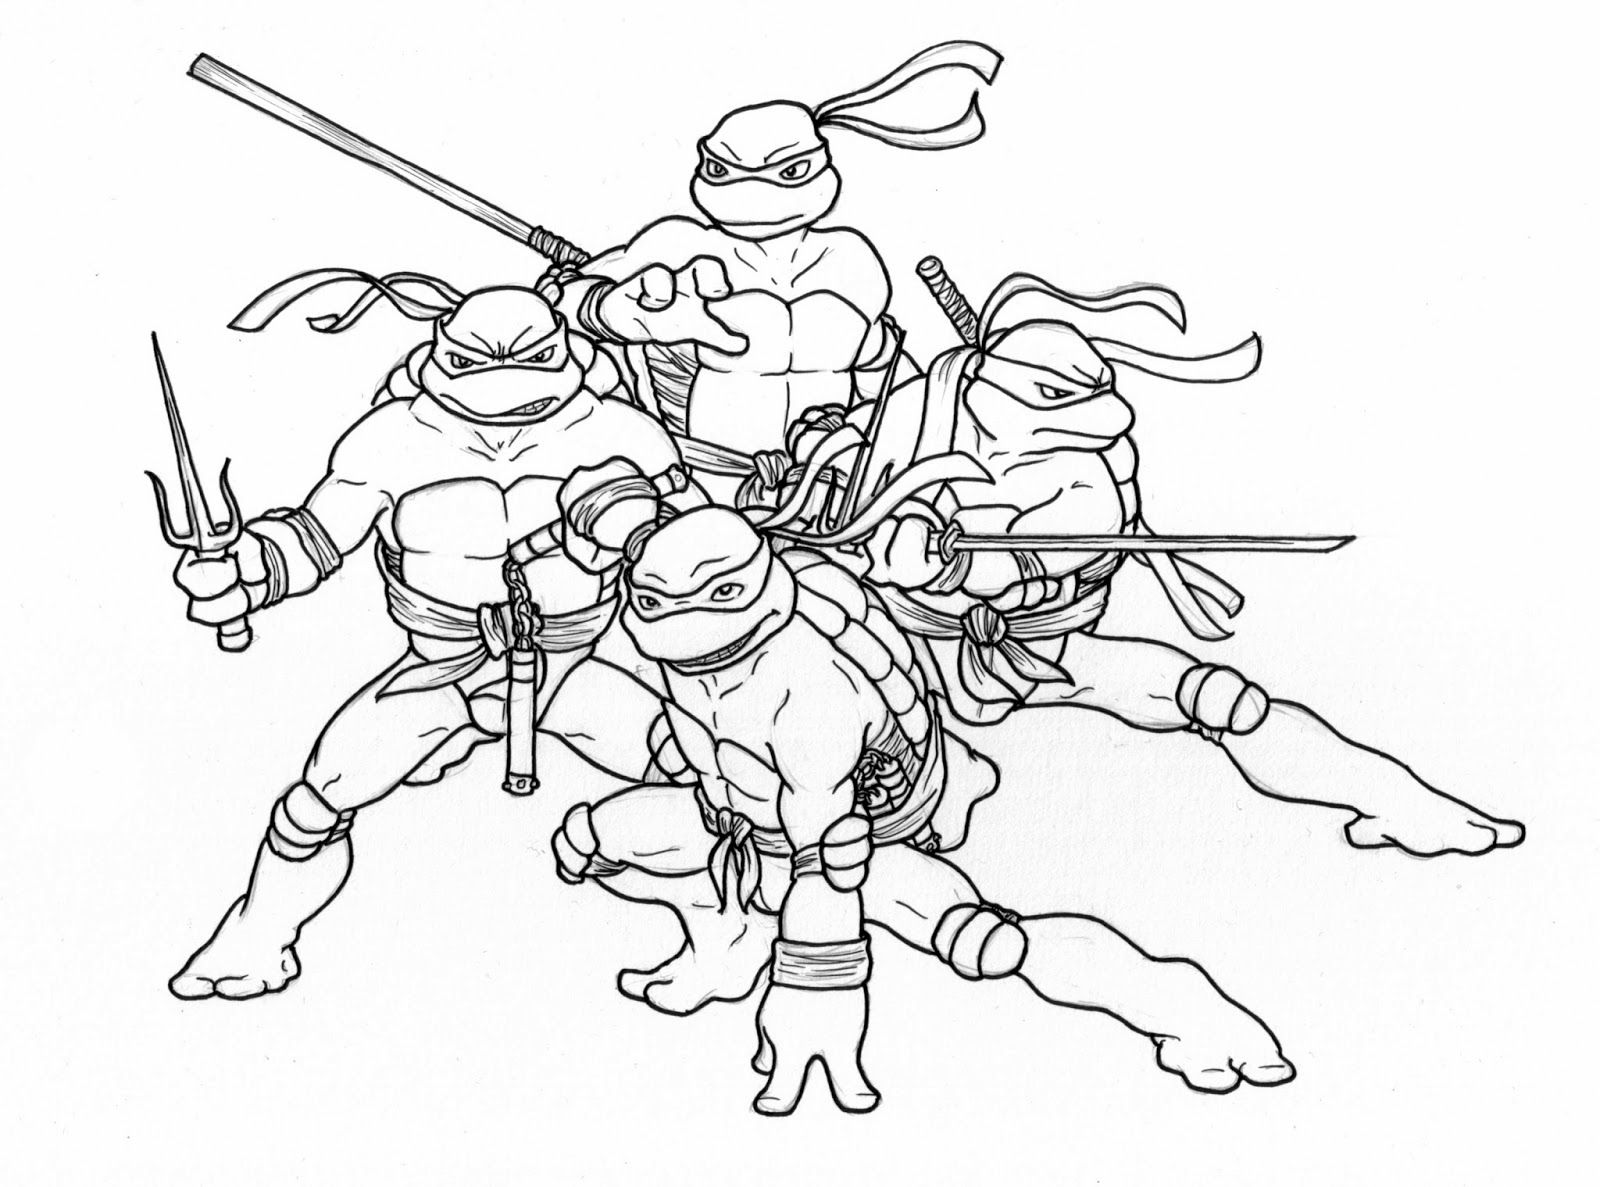 tmnt coloring pages 20 pictures colorinenet 9303